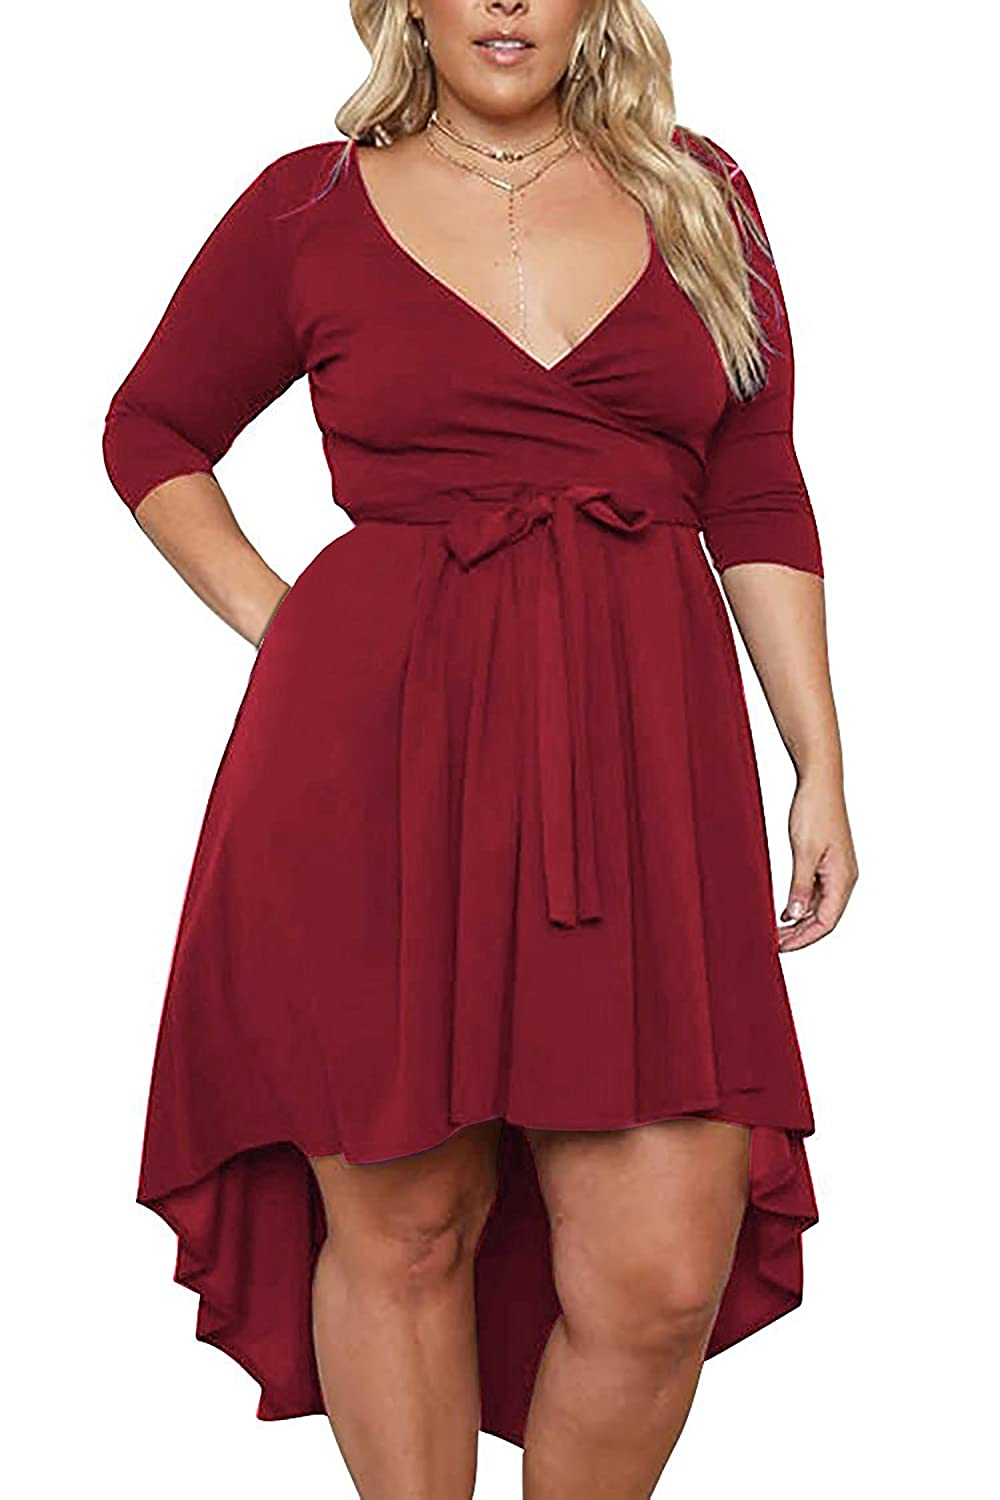 3e754b809533 The drop down size is US Plus SIZE. Stretchy and Soft Material,V-neckline  with self-tie belt. Unique HIGH LOW Hem Design,above the knee,flared swing.